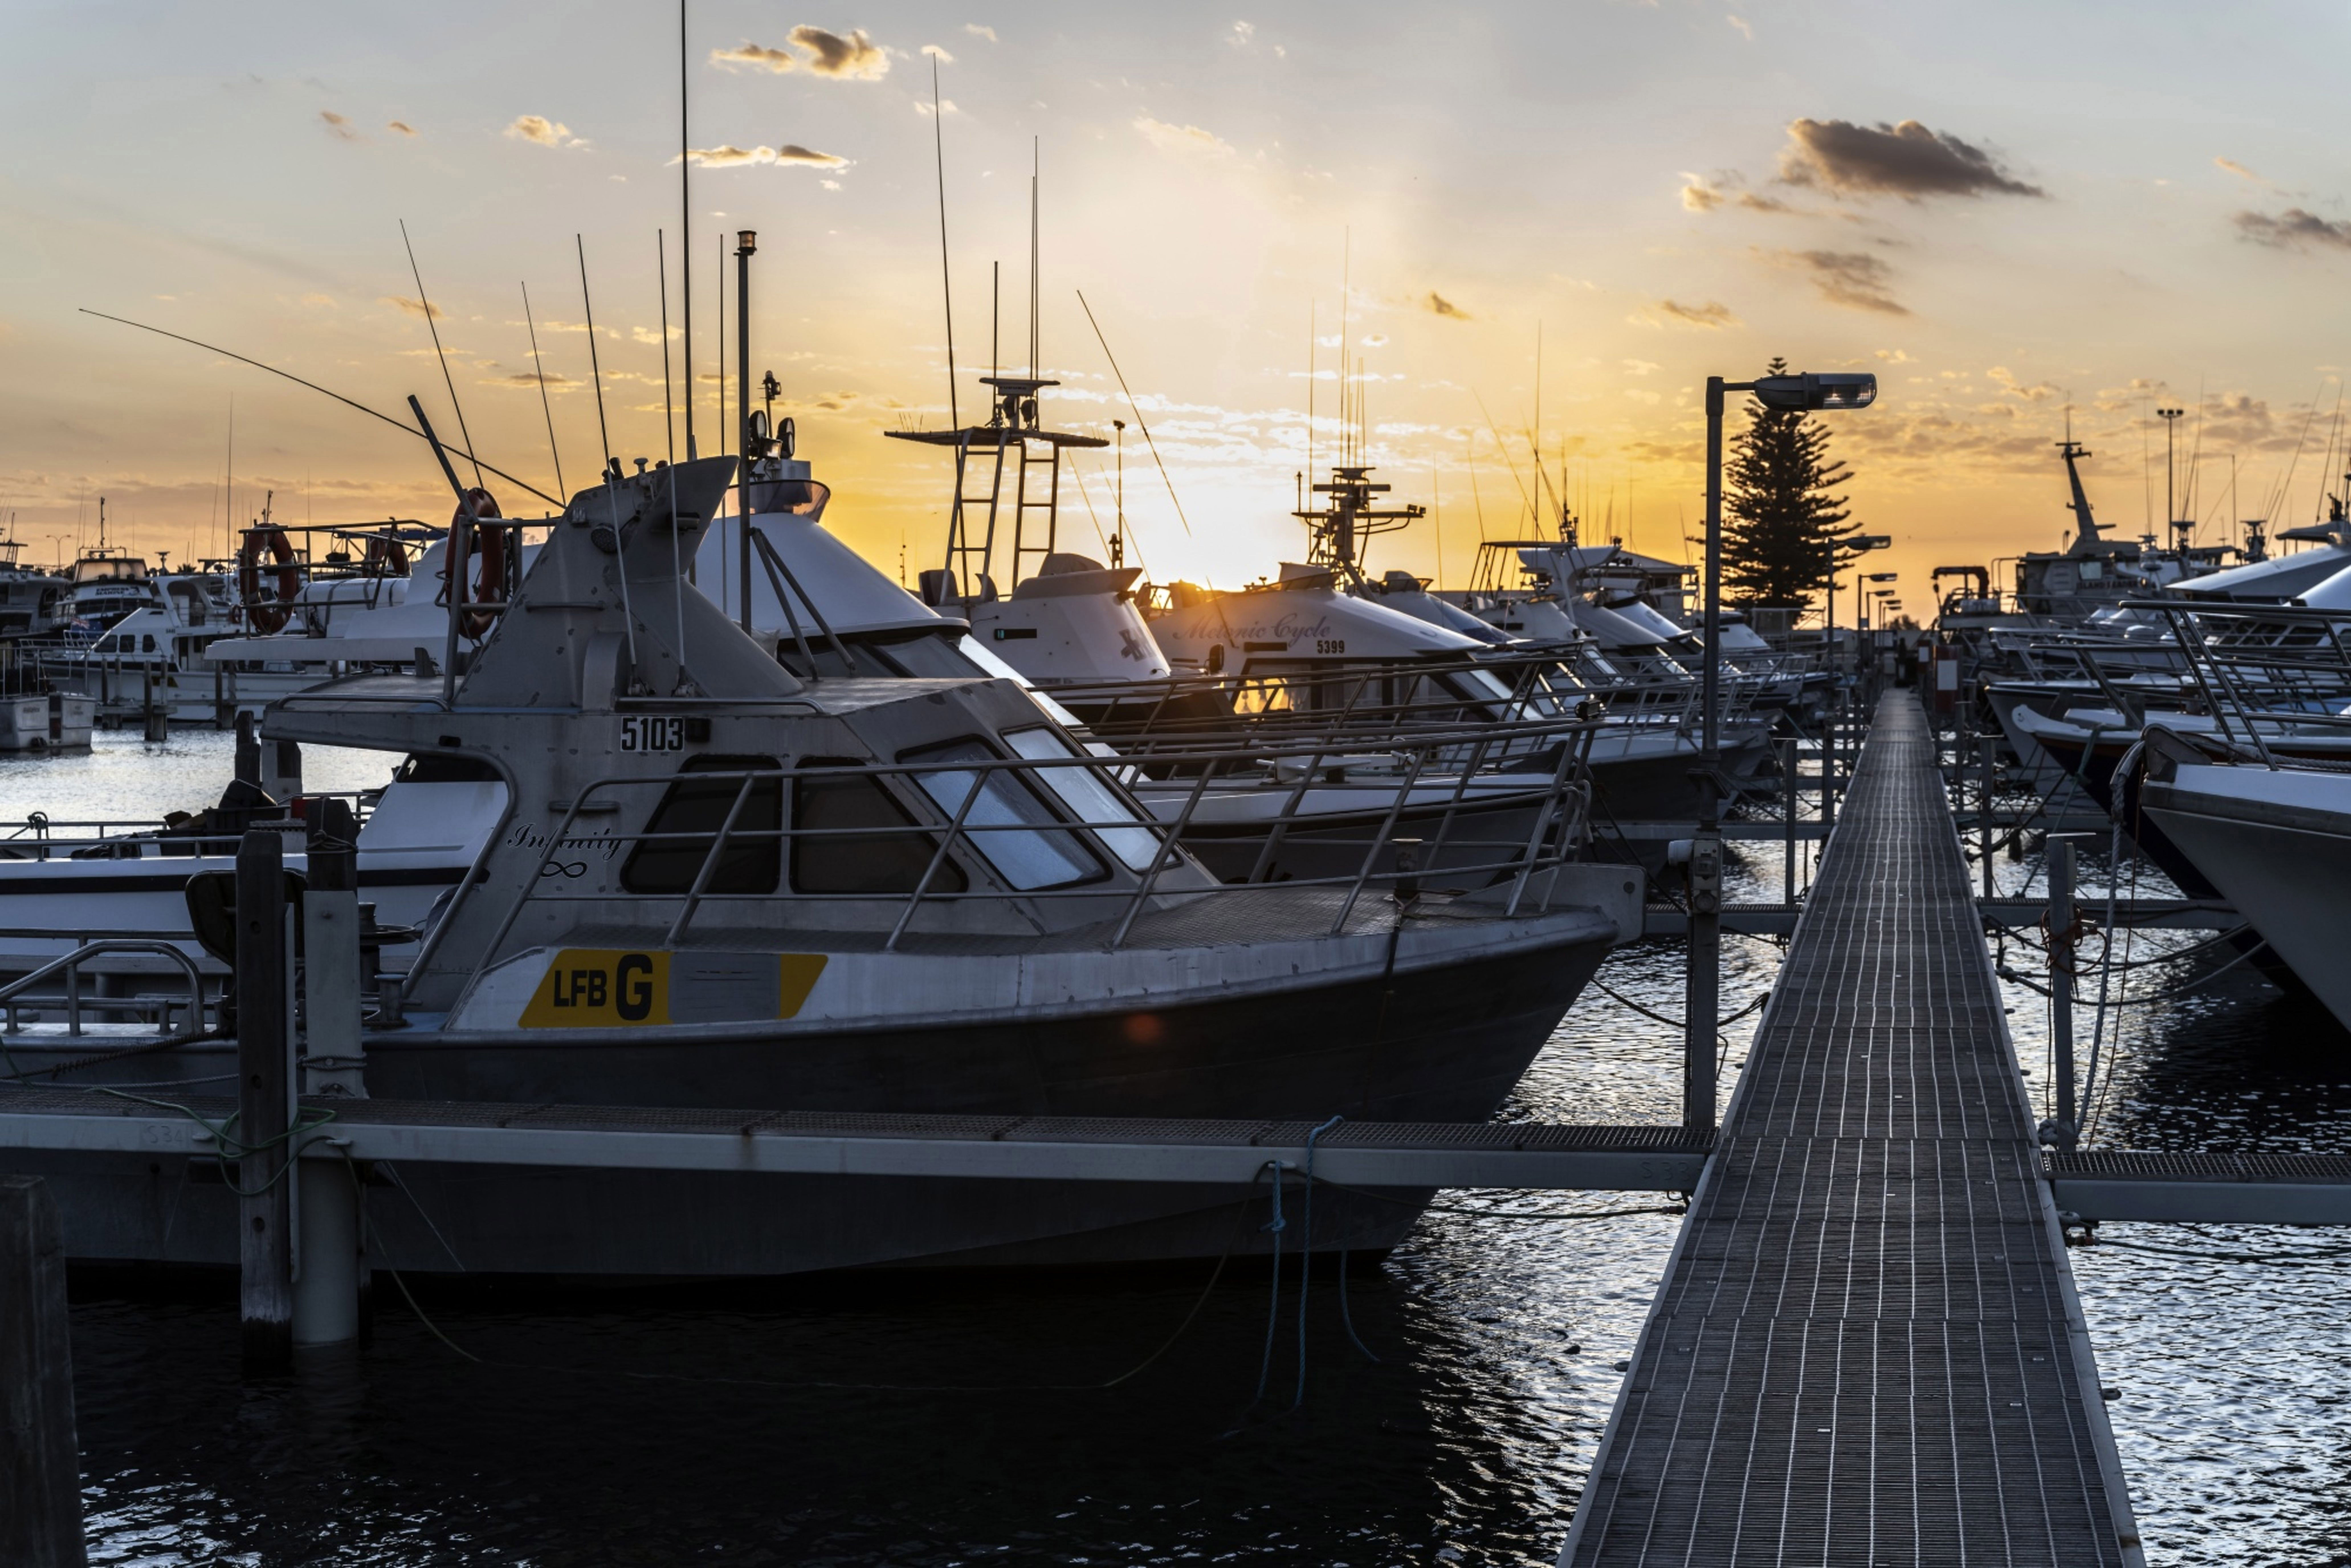 Boats sit idle in Fishing Boat Harbour in Geraldton, Australia, as the Western Rock Lobster Industry grinds almost to a halt due to the corona virus crisis. MUST CREDIT: Bloomberg photo by David Dare Parker.